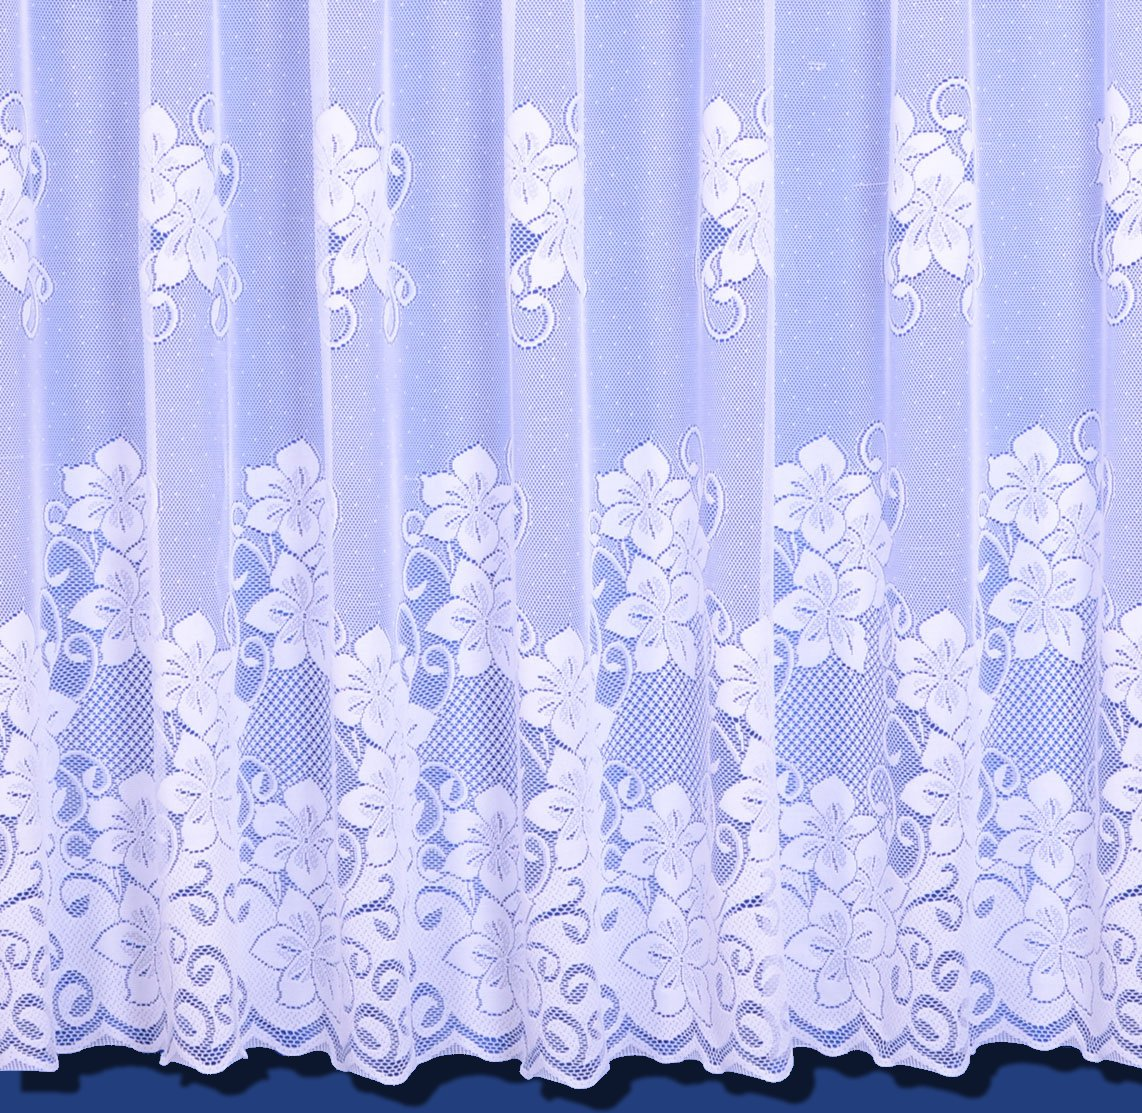 Heidi Heavyweight Floral Scalloped Net Curtain In White - Sold By The Metre - 36